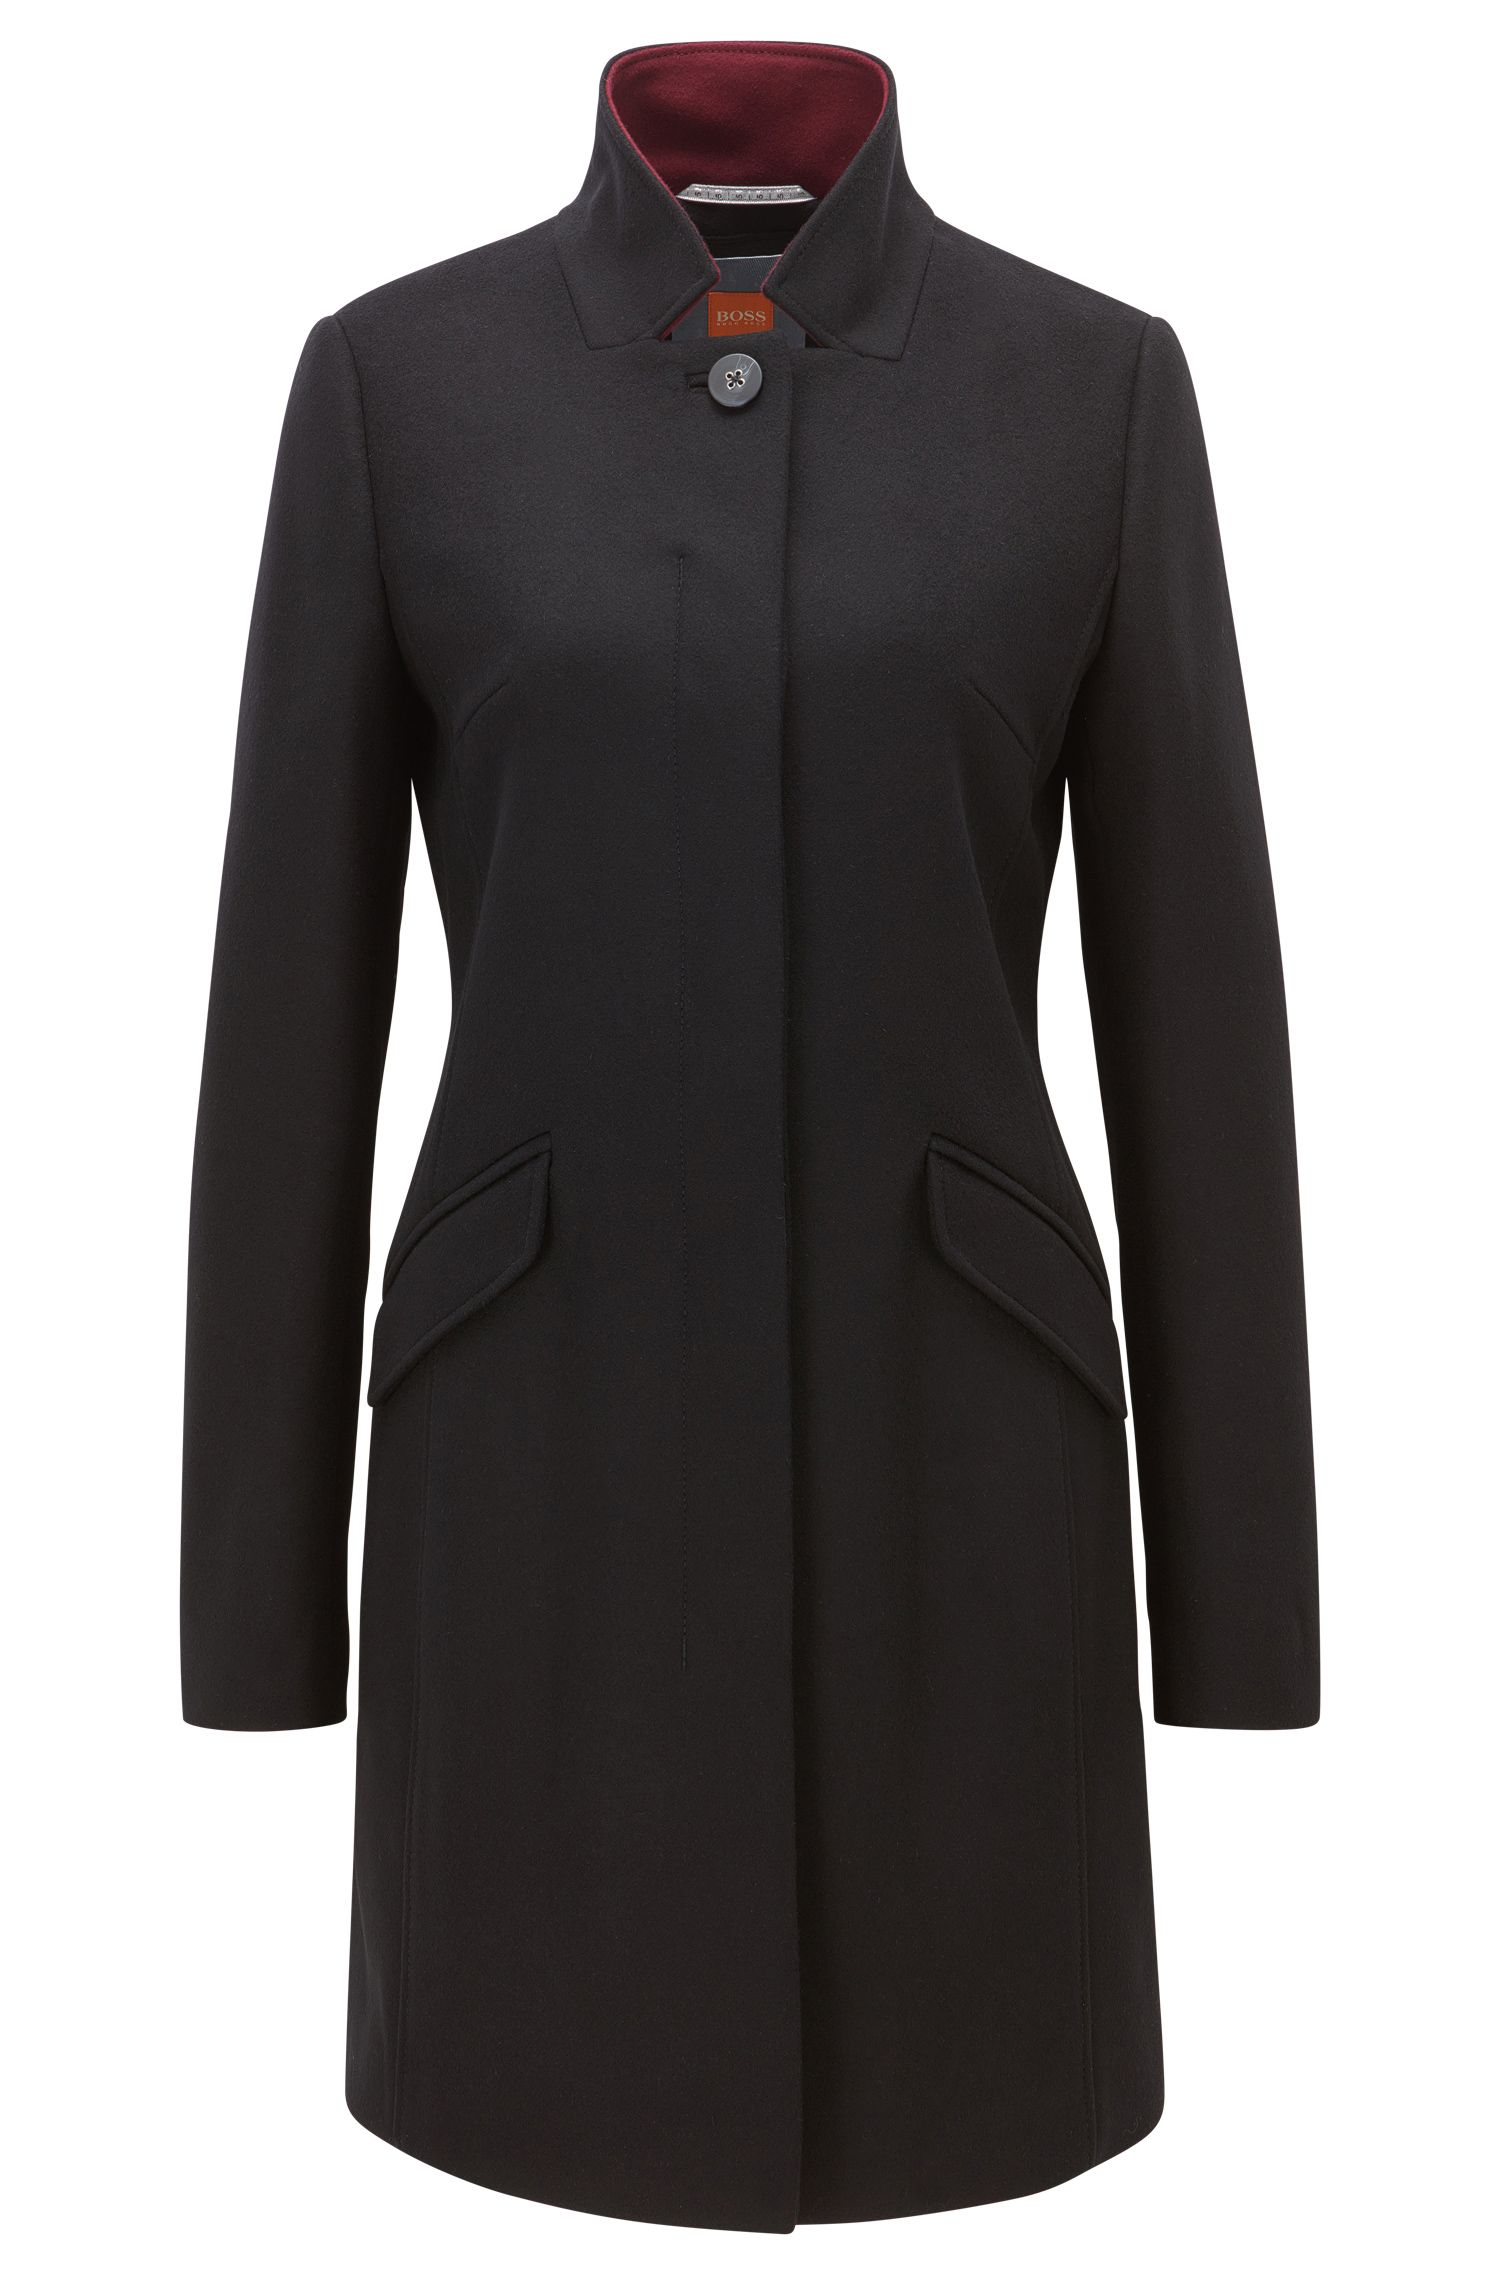 Mid-weight concealed-button-up coat in a wool blend